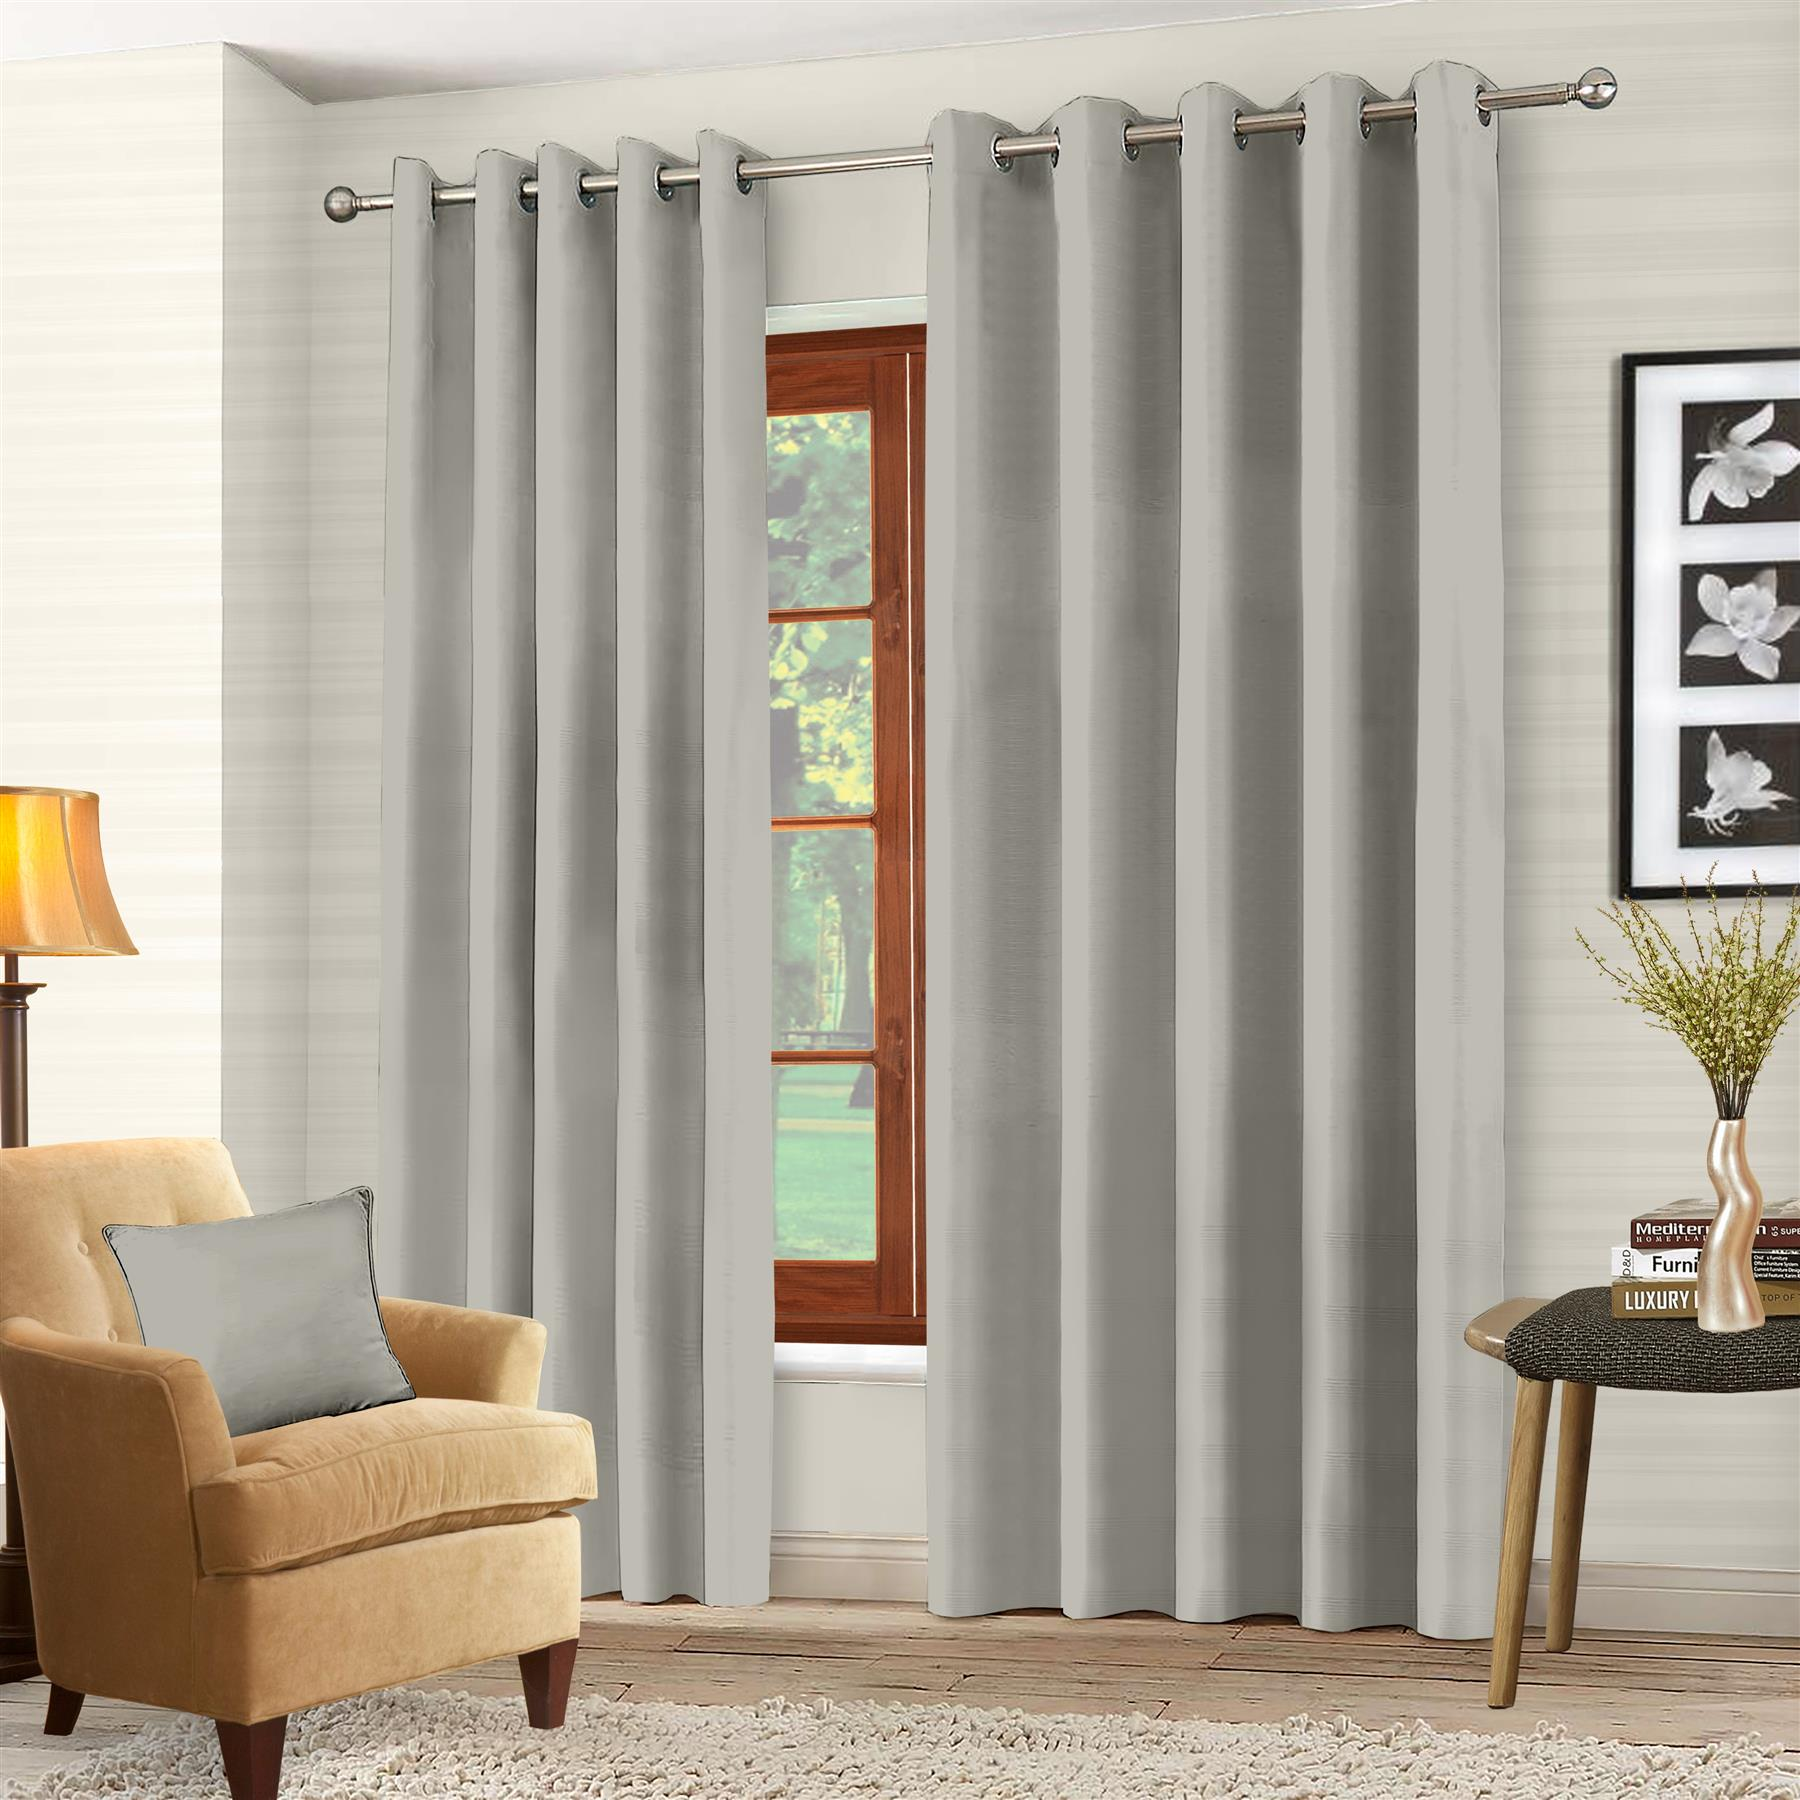 Luxury-Thermal-Blackout-Eyelet-Ring-Top-Curtains-Pair-with-tie-backs thumbnail 46